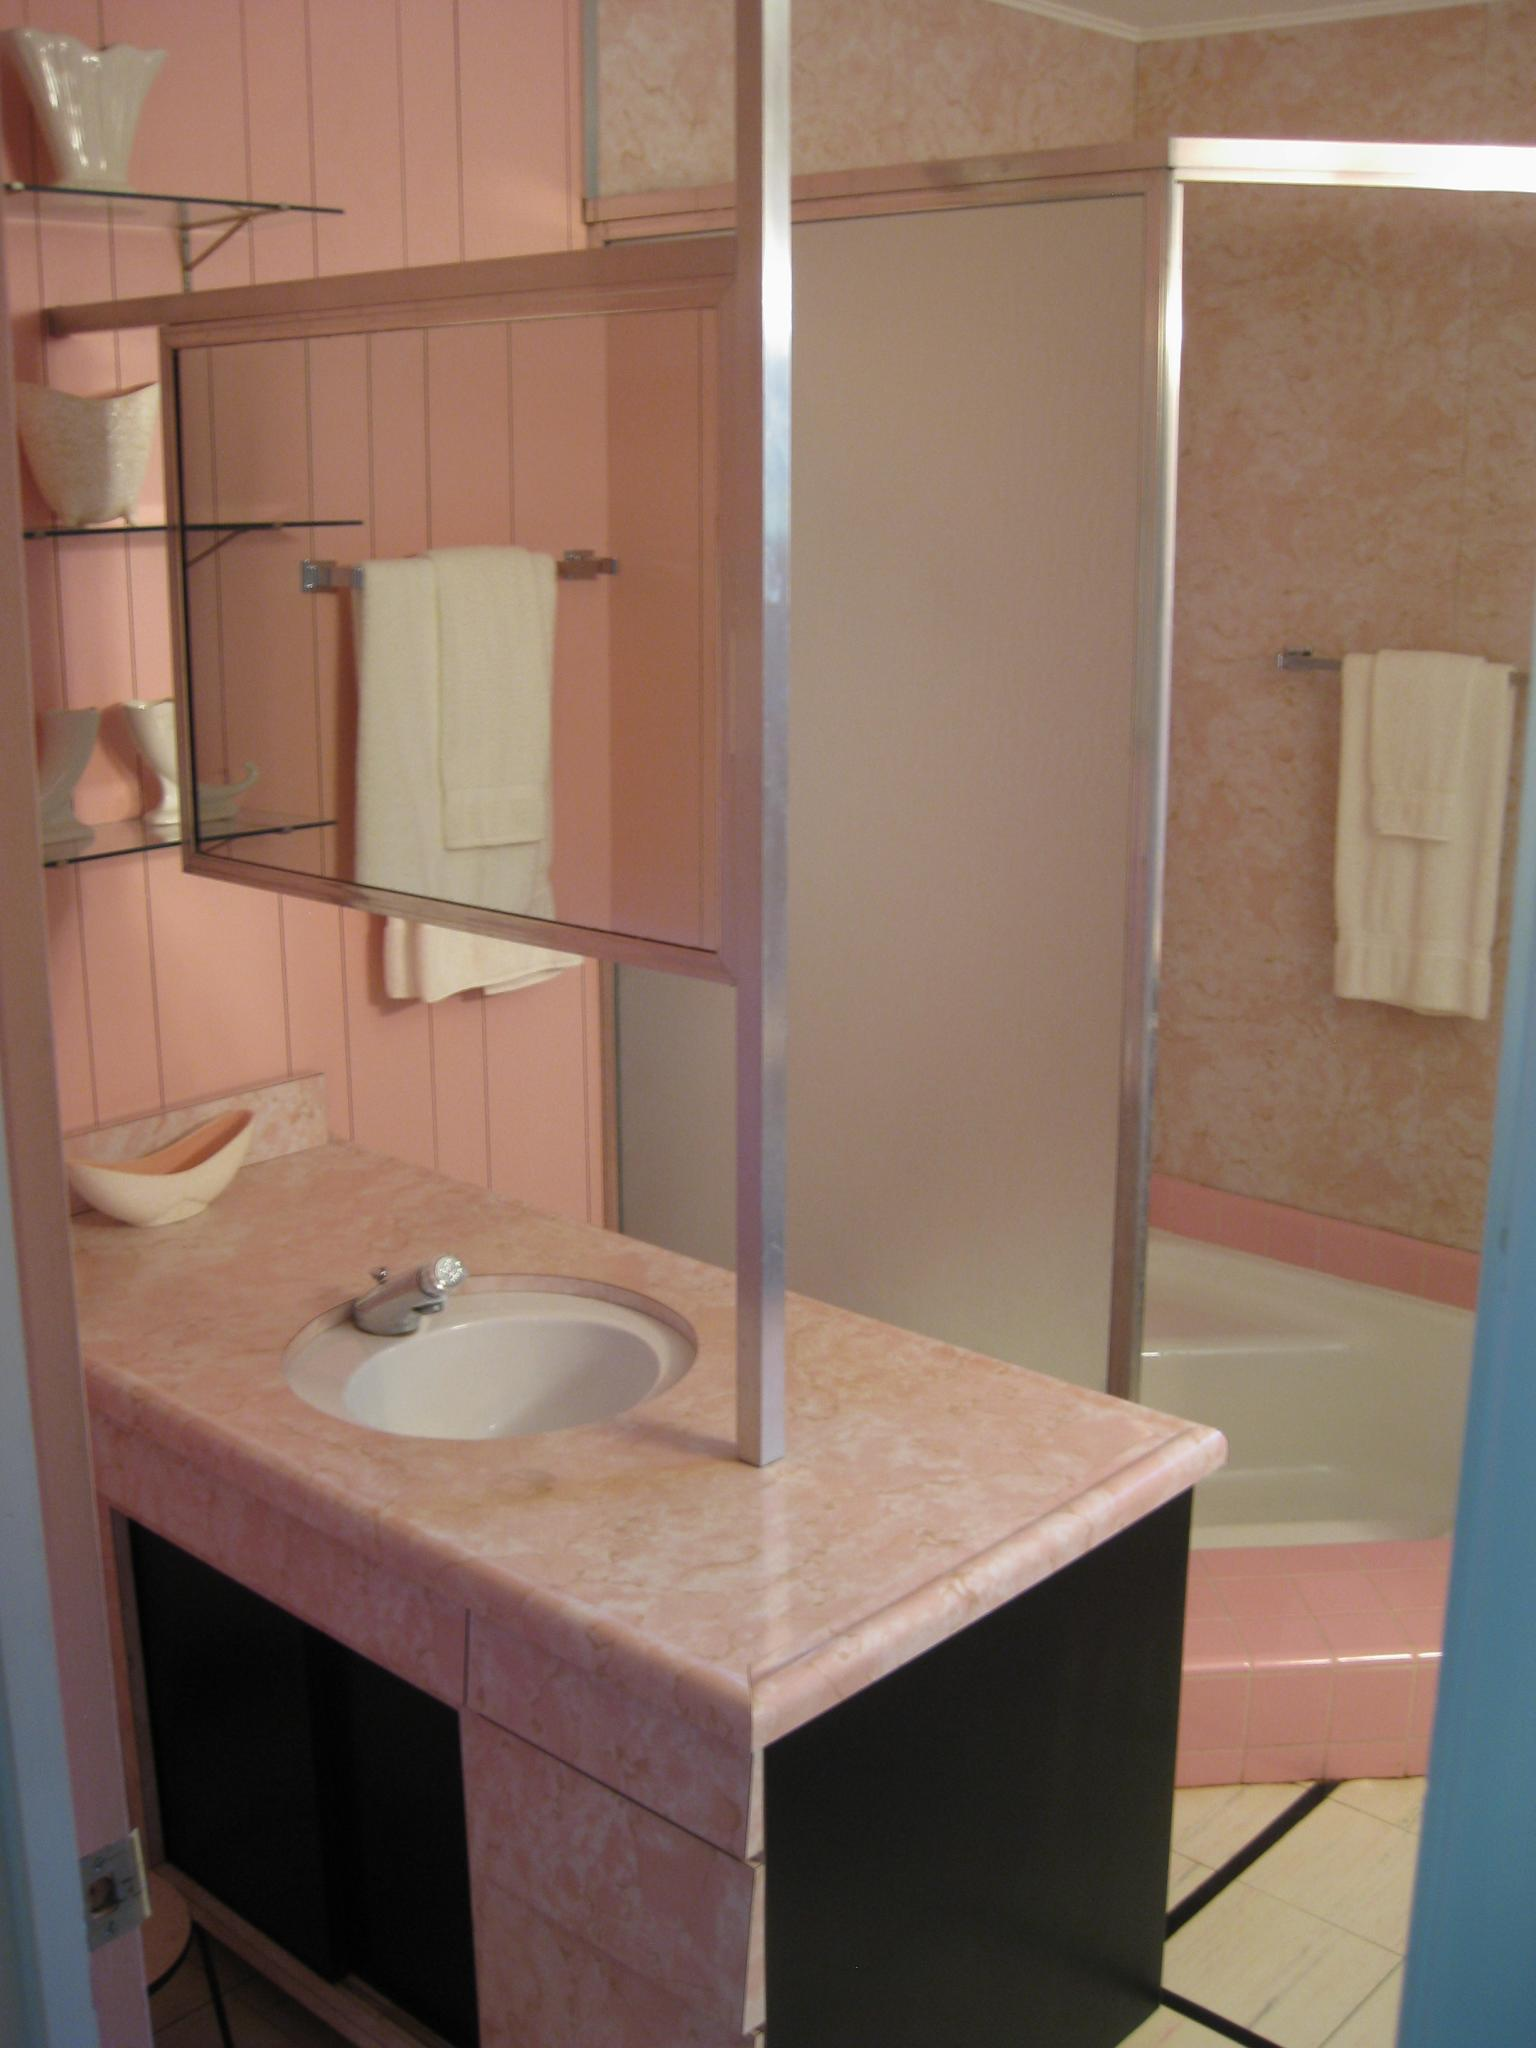 Double Sided Farmhouse Sink : some pink A two-person sink with double-sided mirror. At ...